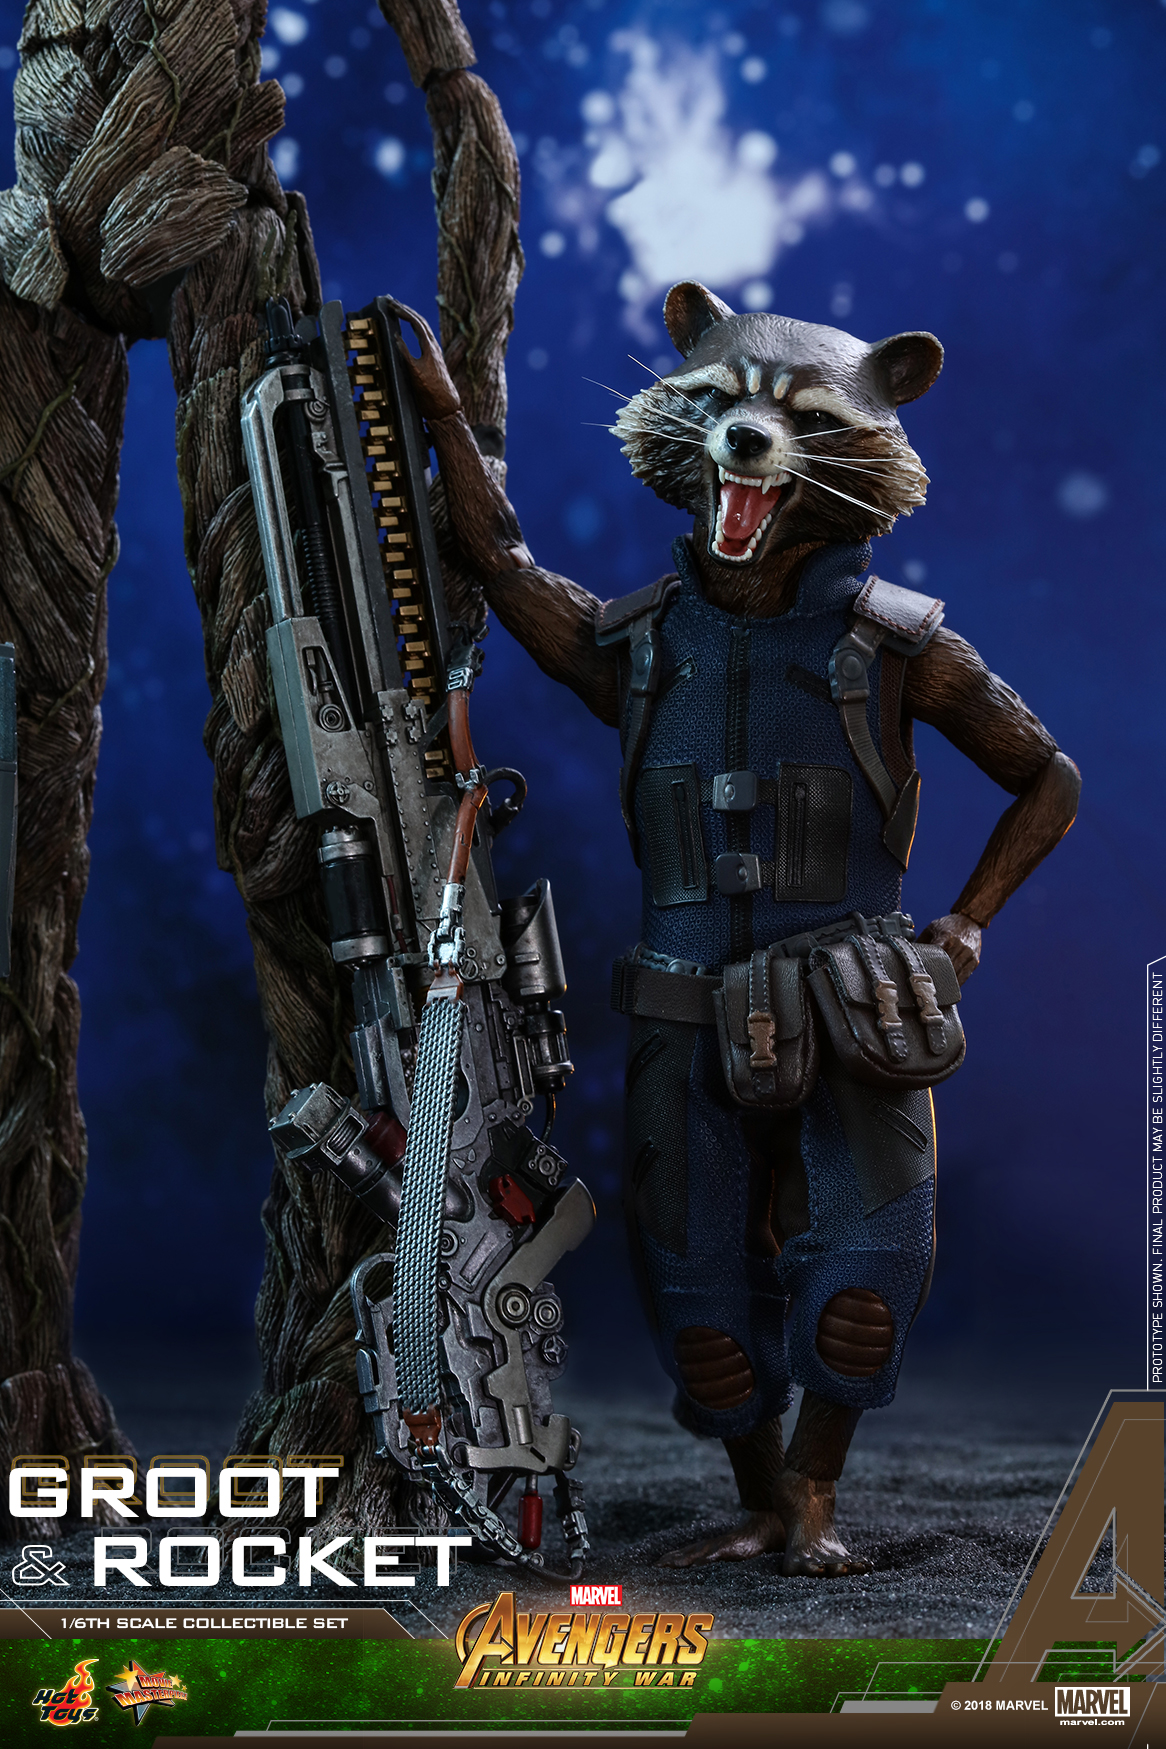 Hot Toys - AIW - Groot & Rocket collectible set_PR14